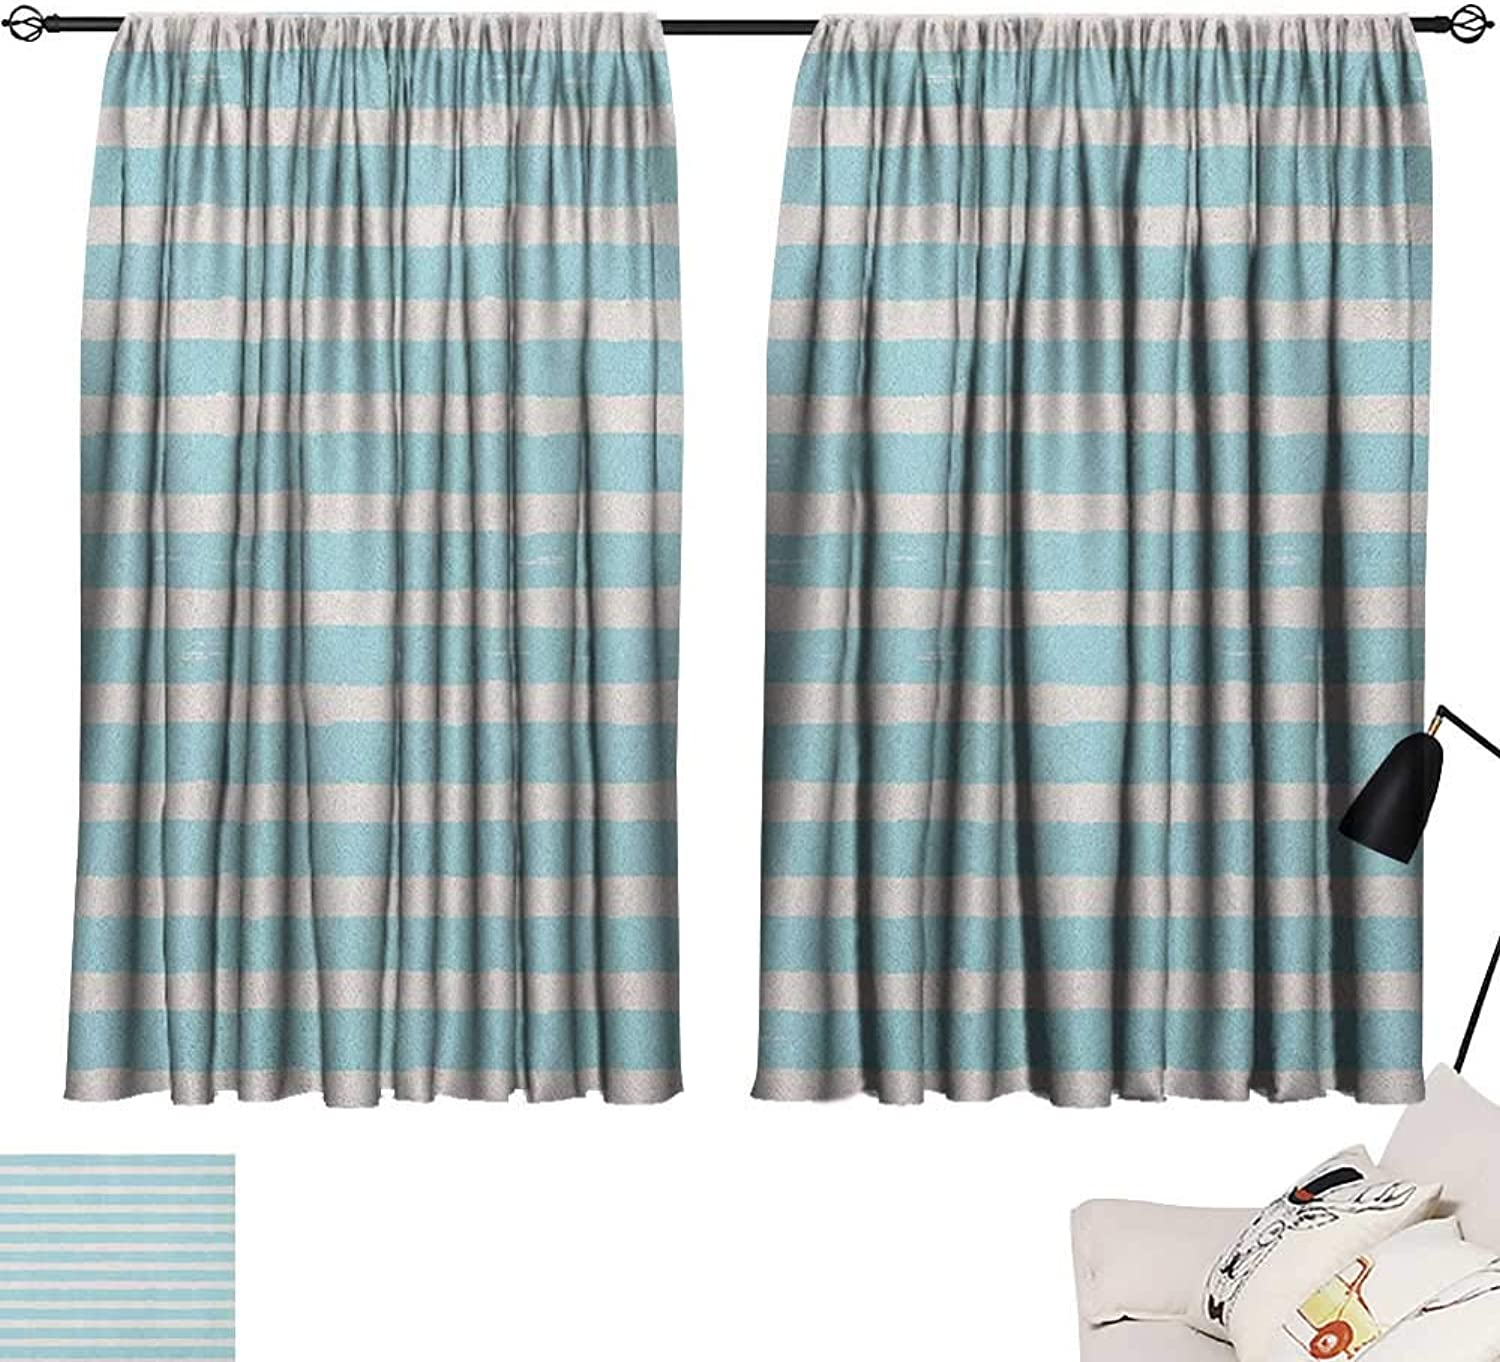 Beihai1Sun Kids Insulating Darkening Curtains Horizontally Striped Pattern with Brushstrokes Grunge and Weathered Look Curtain for Kids Room Pale bluee and Off White W63 x L45